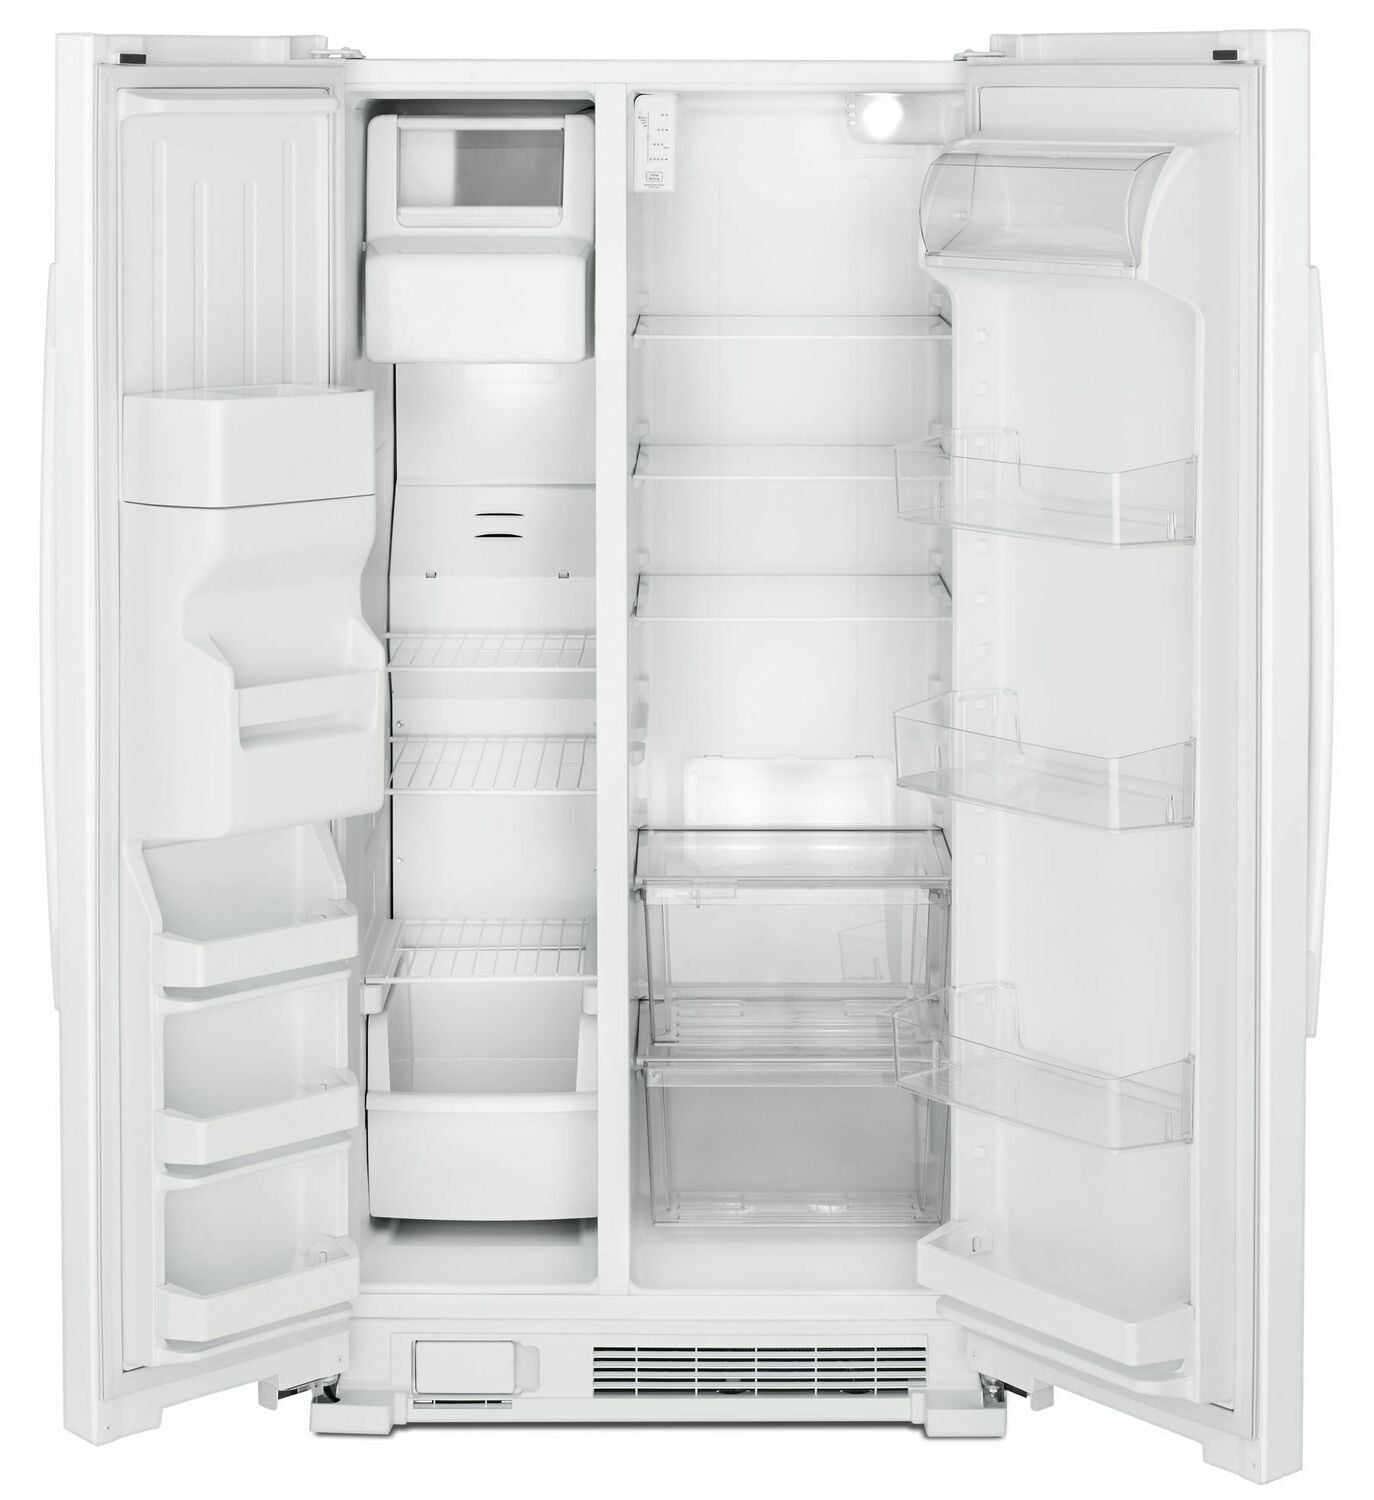 Load image into Gallery viewer, Amana ASI2175GRW 33-Inch Side-By-Side Refrigerator With Dual Pad External Ice And Water Dispenser - White